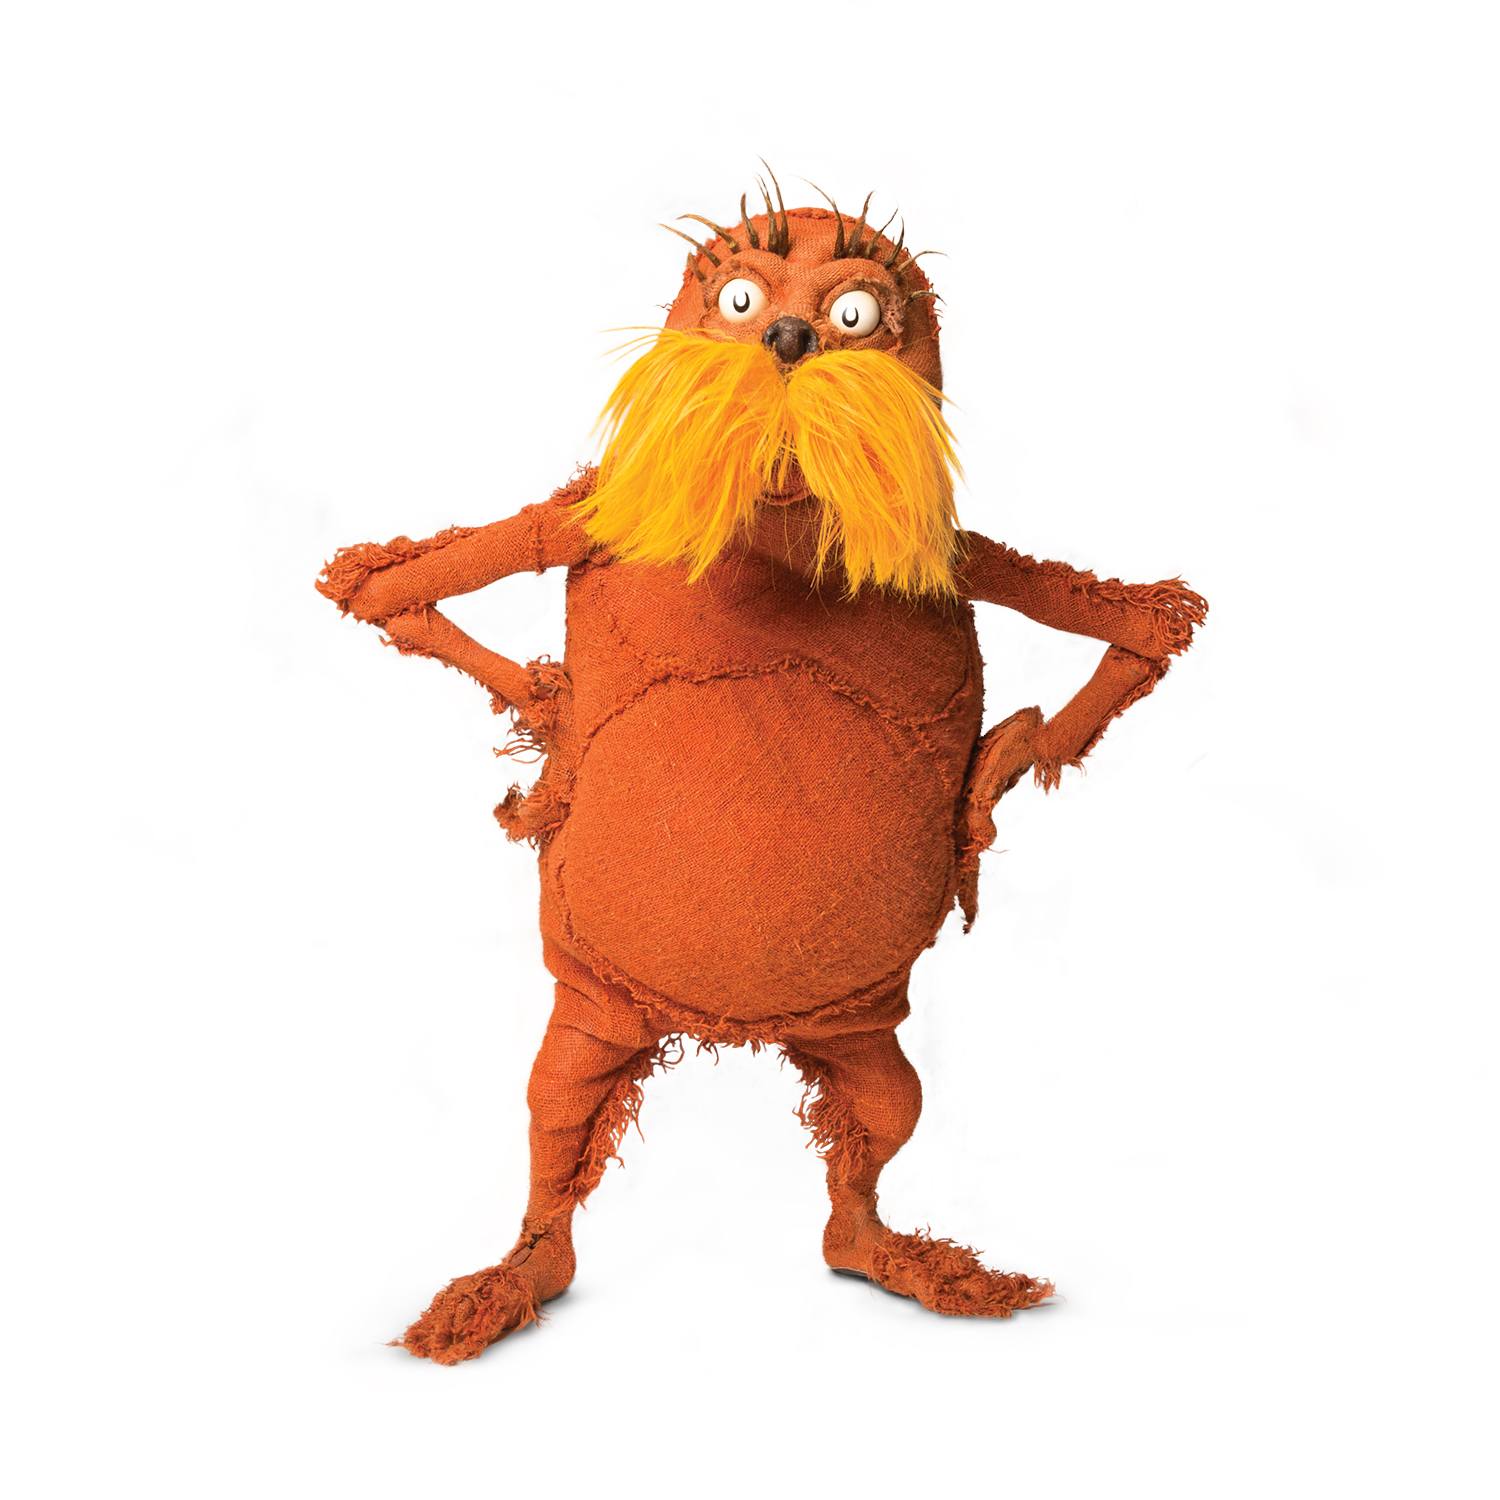 lorax_pose1_press_notitle.jpg